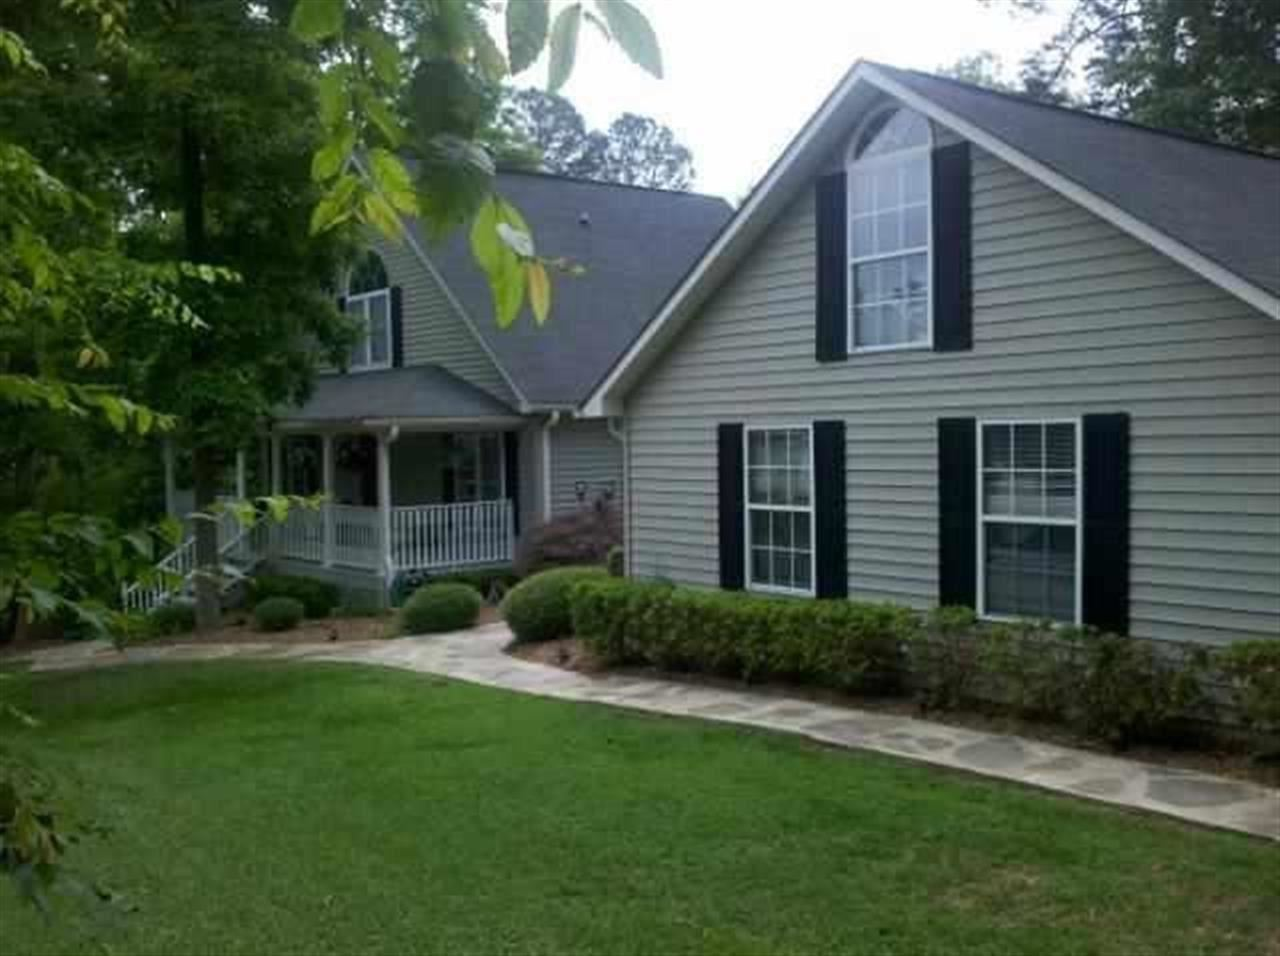 Real Estate for Sale, ListingId: 28006305, Central, SC  29630